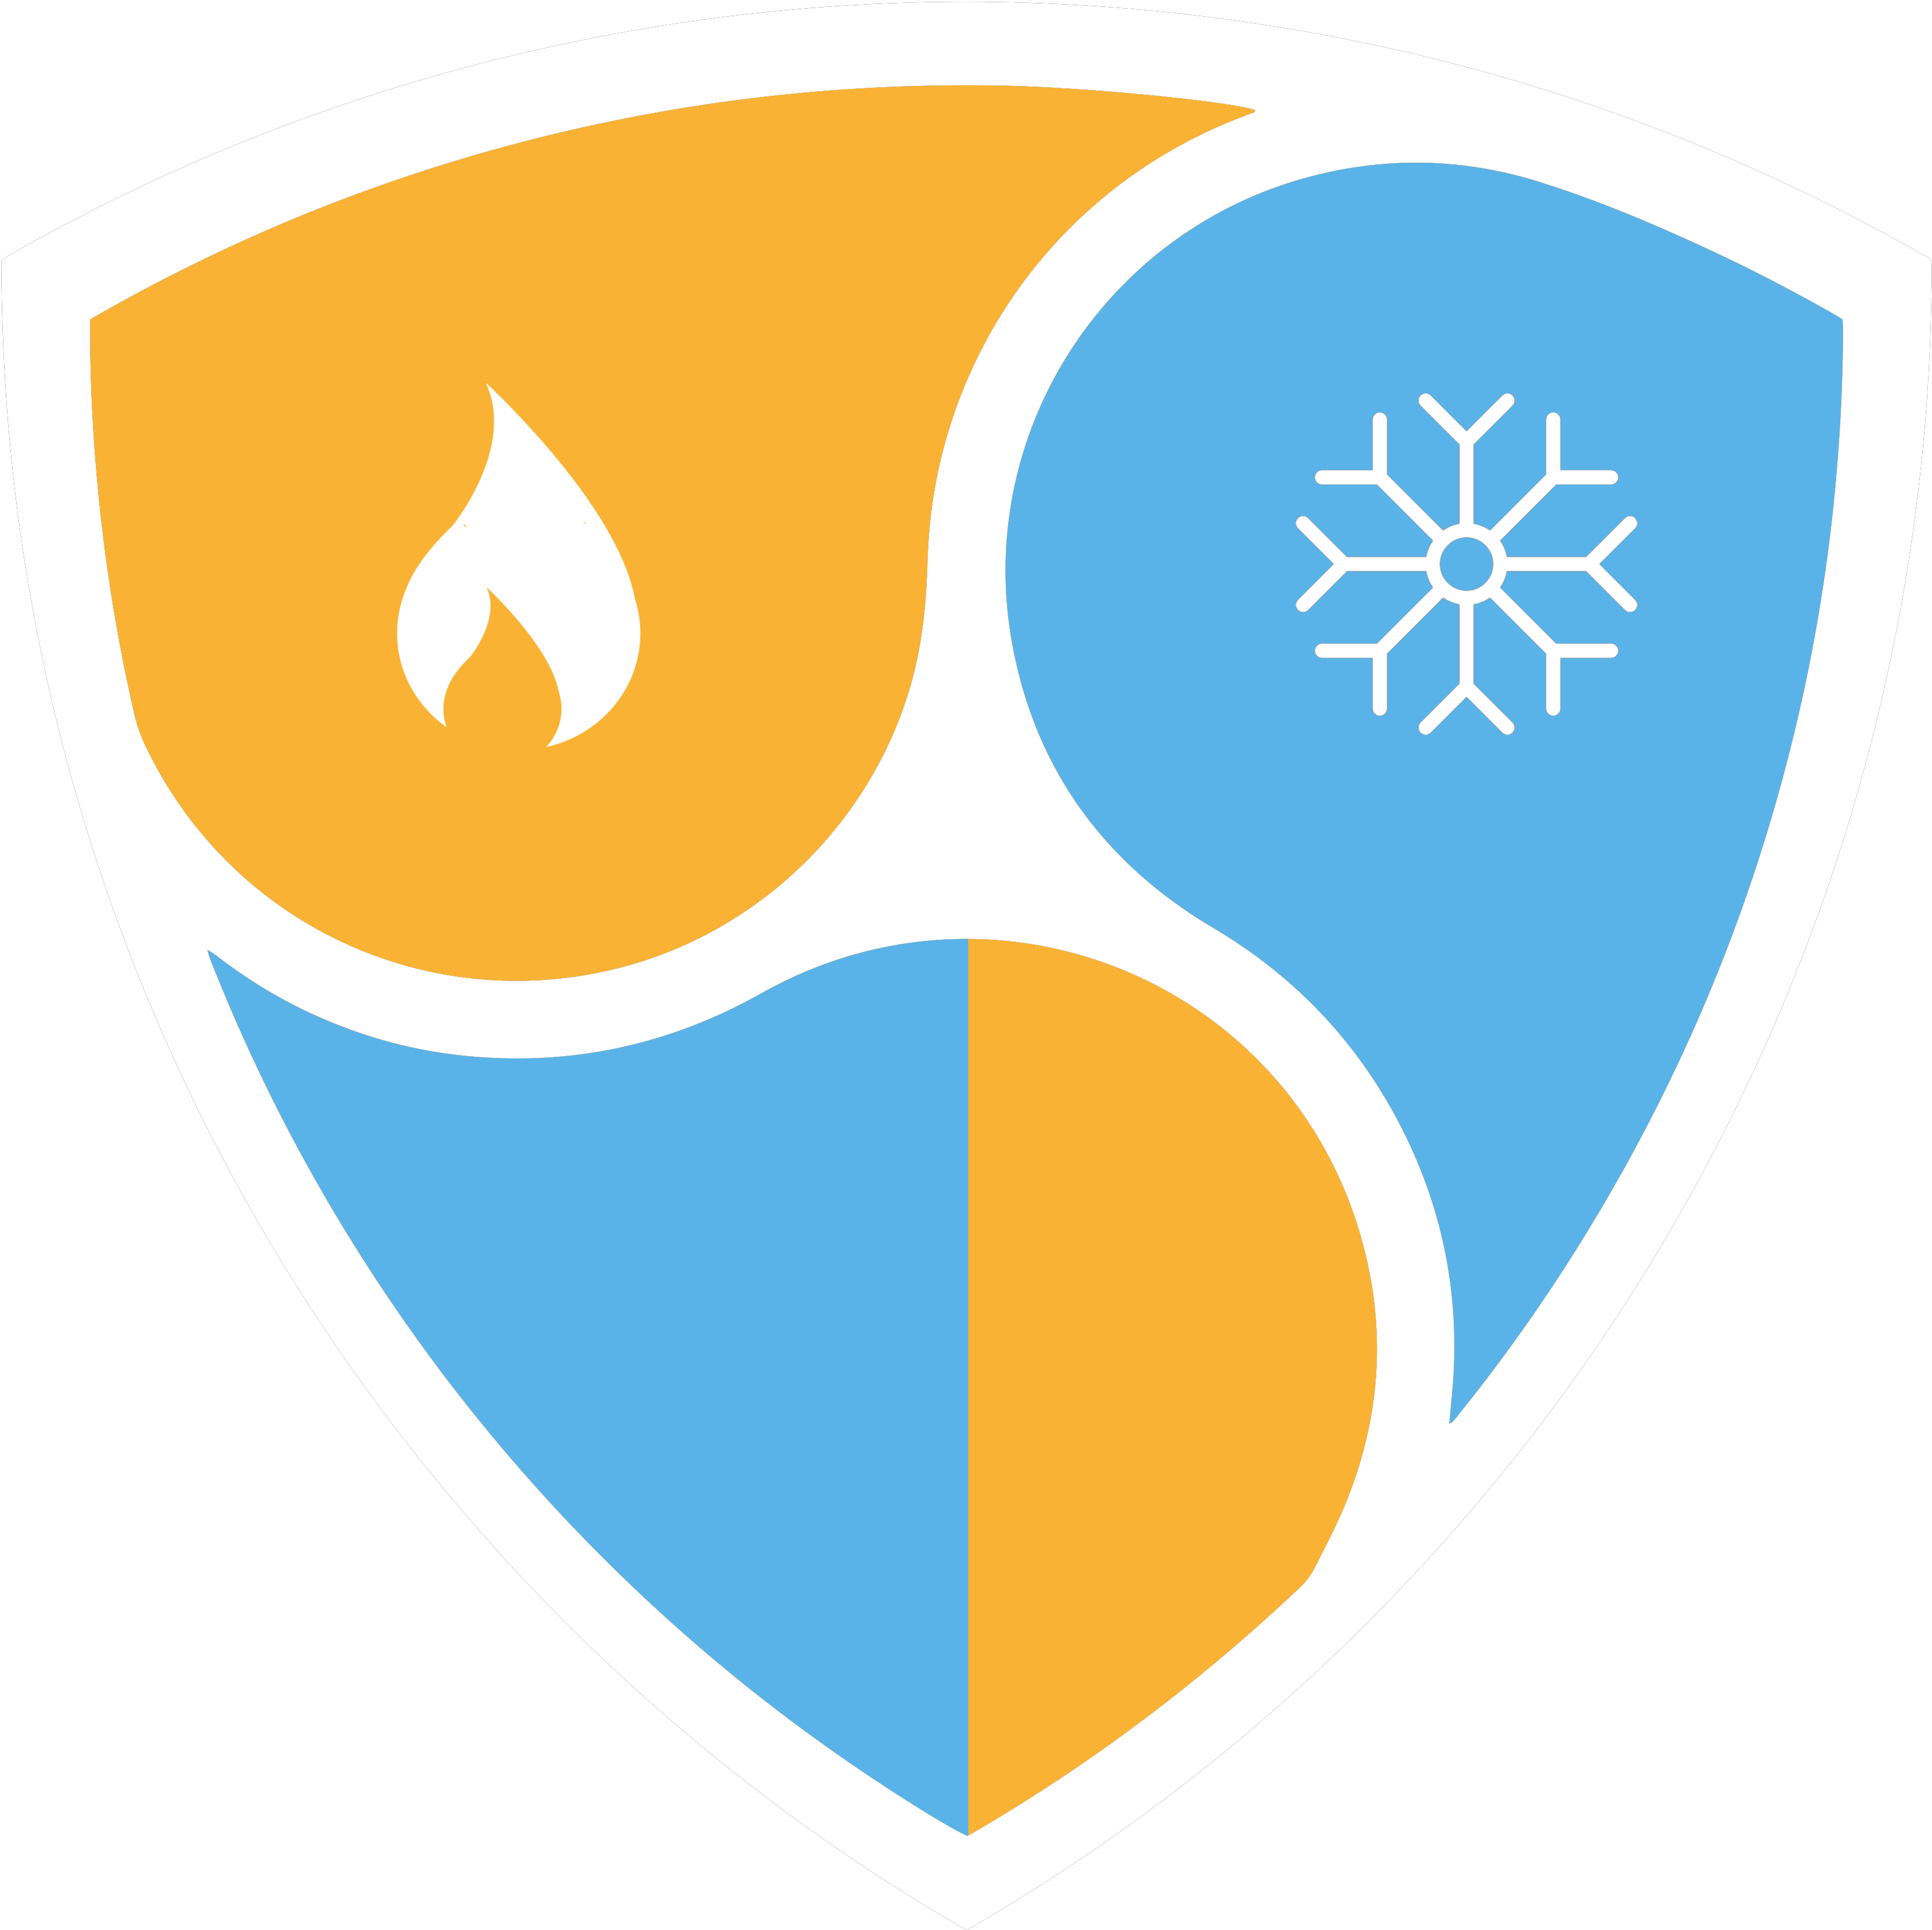 NEM Hot/Cold Wallet: The First Ever NEM Cold Offline Wallet You Can Use To  Send And Receive Funds - Hot And Cold PNG